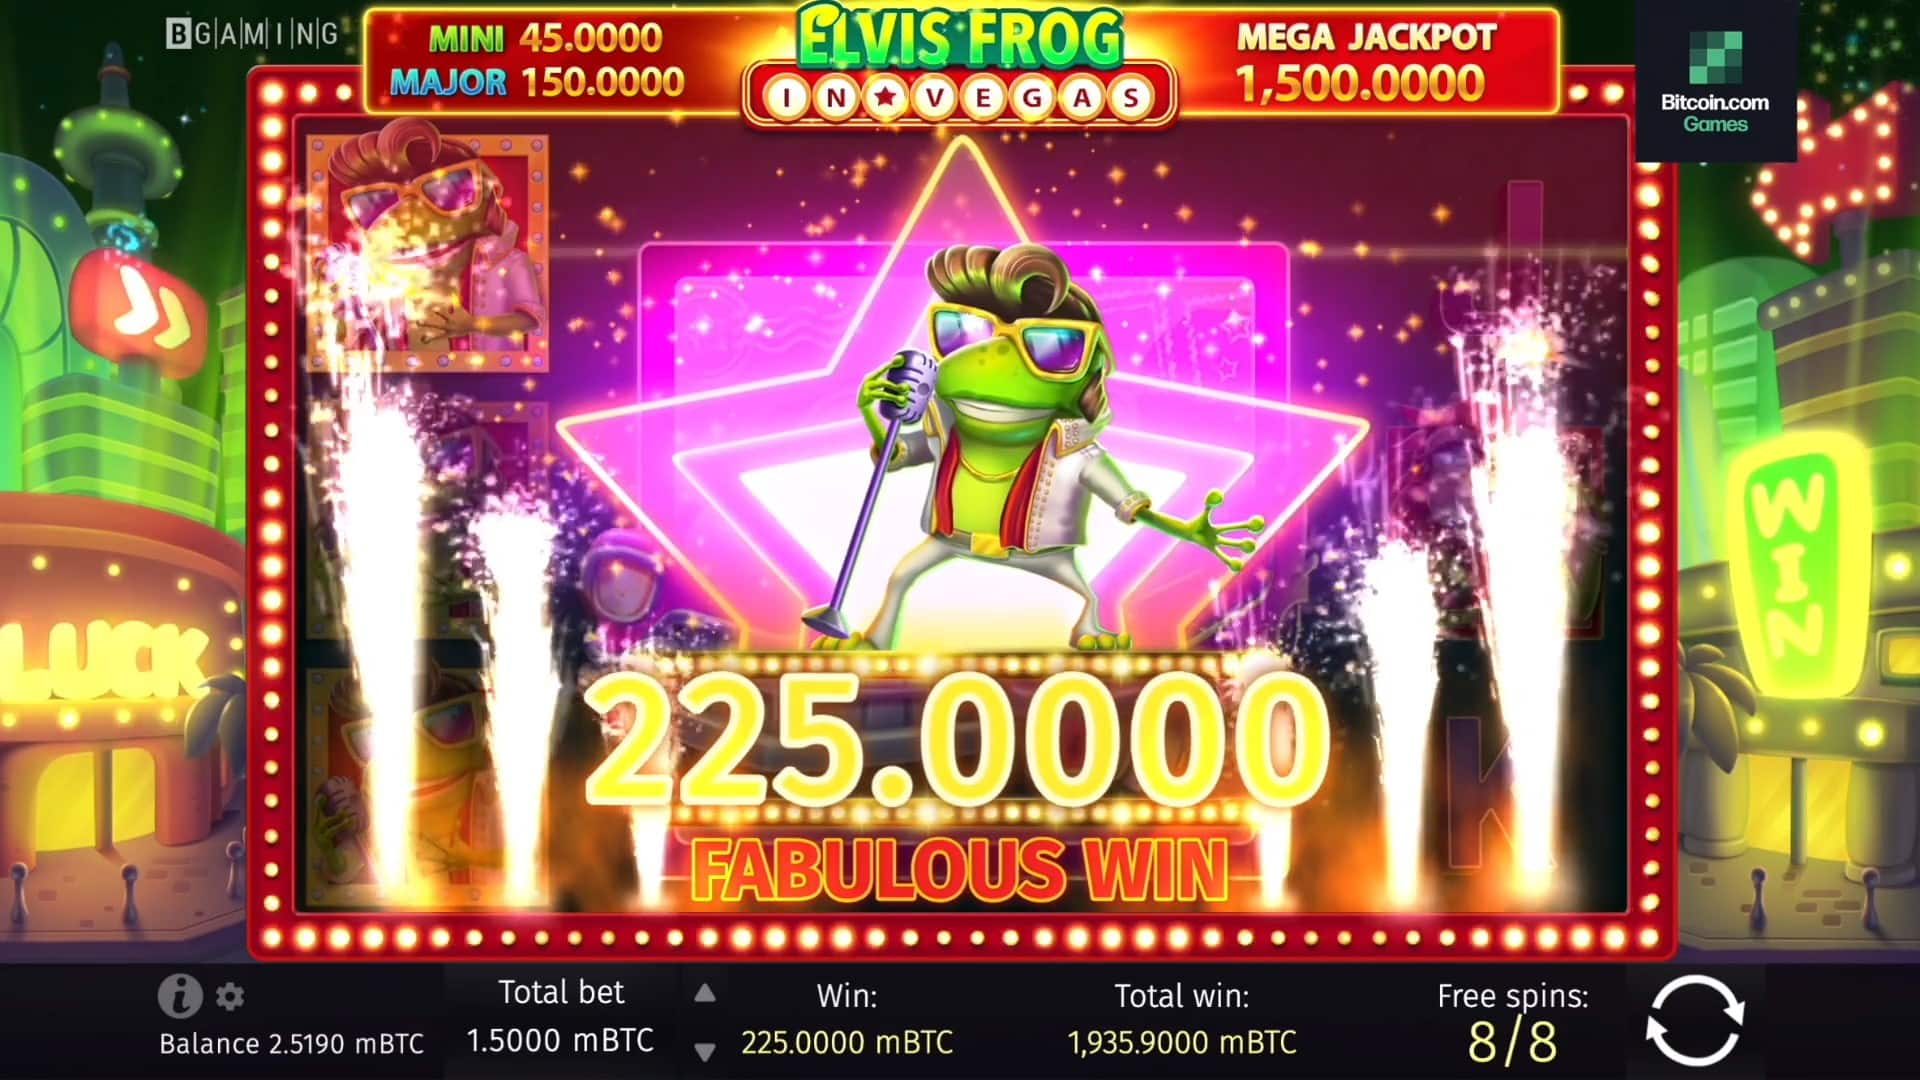 Player of Bitcoin.com Games Hits Mega Jackpot in the Elvis Frog in Vegas Online Slot